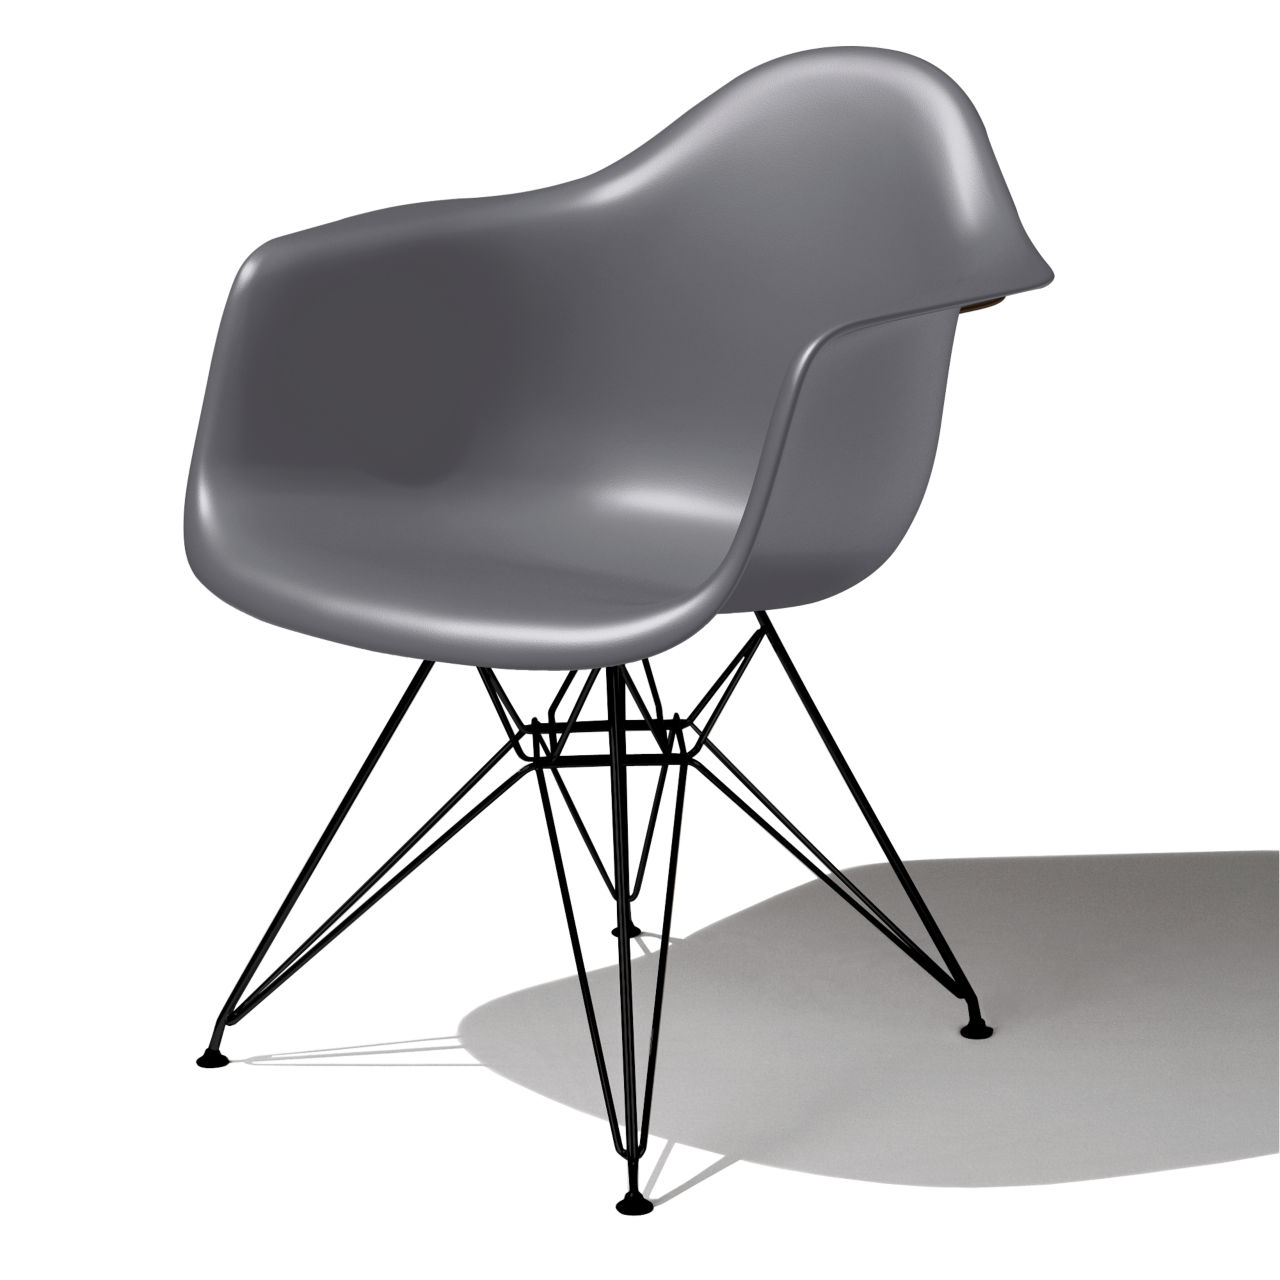 Eames Molded Plastic Armchair in Charcoal by Herman Miller